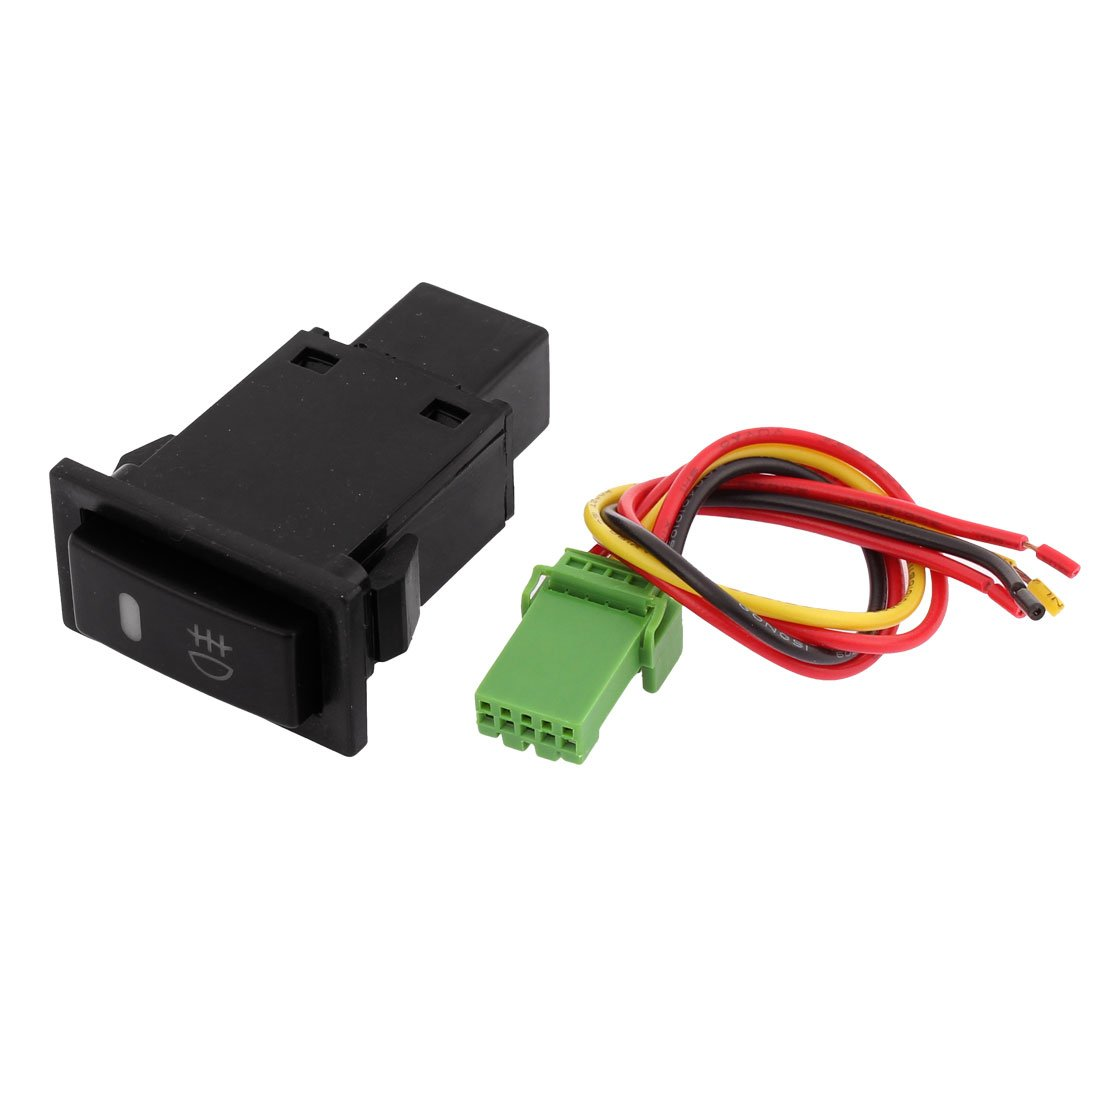 Uxcell a15102600ux0370 Fog Light Switch